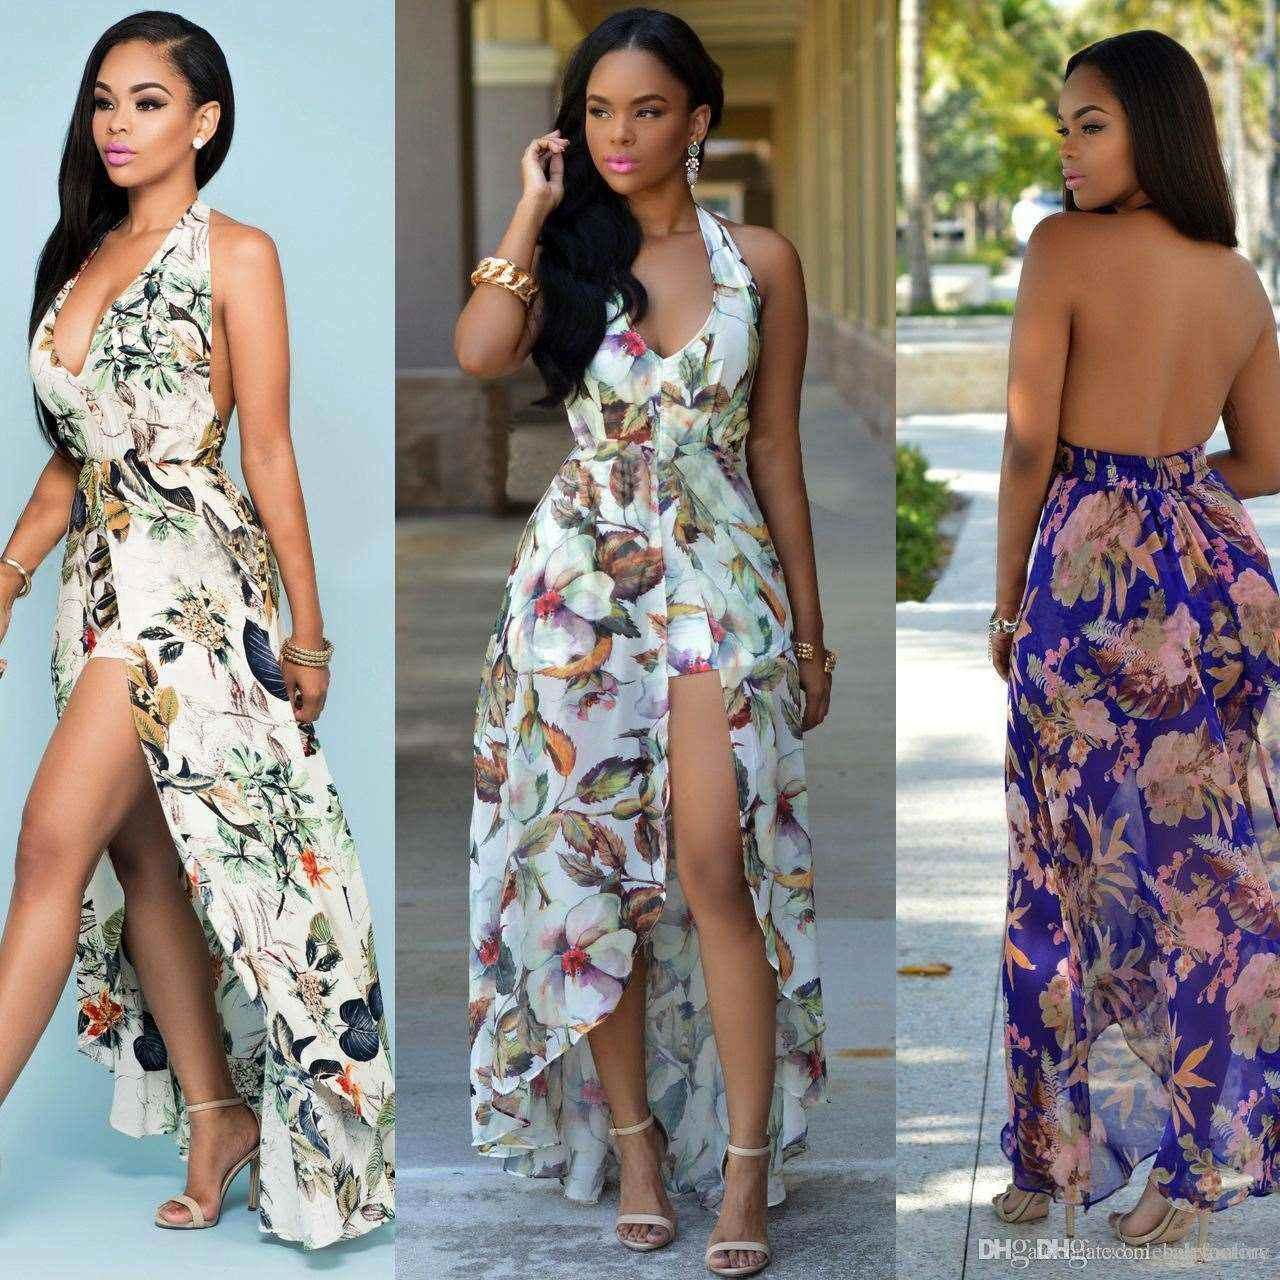 61699f01495 2017 Hot Bohemian Maxi Rompers Long Casual Summer Dresses Cheap Plus Size  Printed Chiffon Dresses FS1497 Halter Neck Sexy Backless Split Long Sleeve  Dresses ...